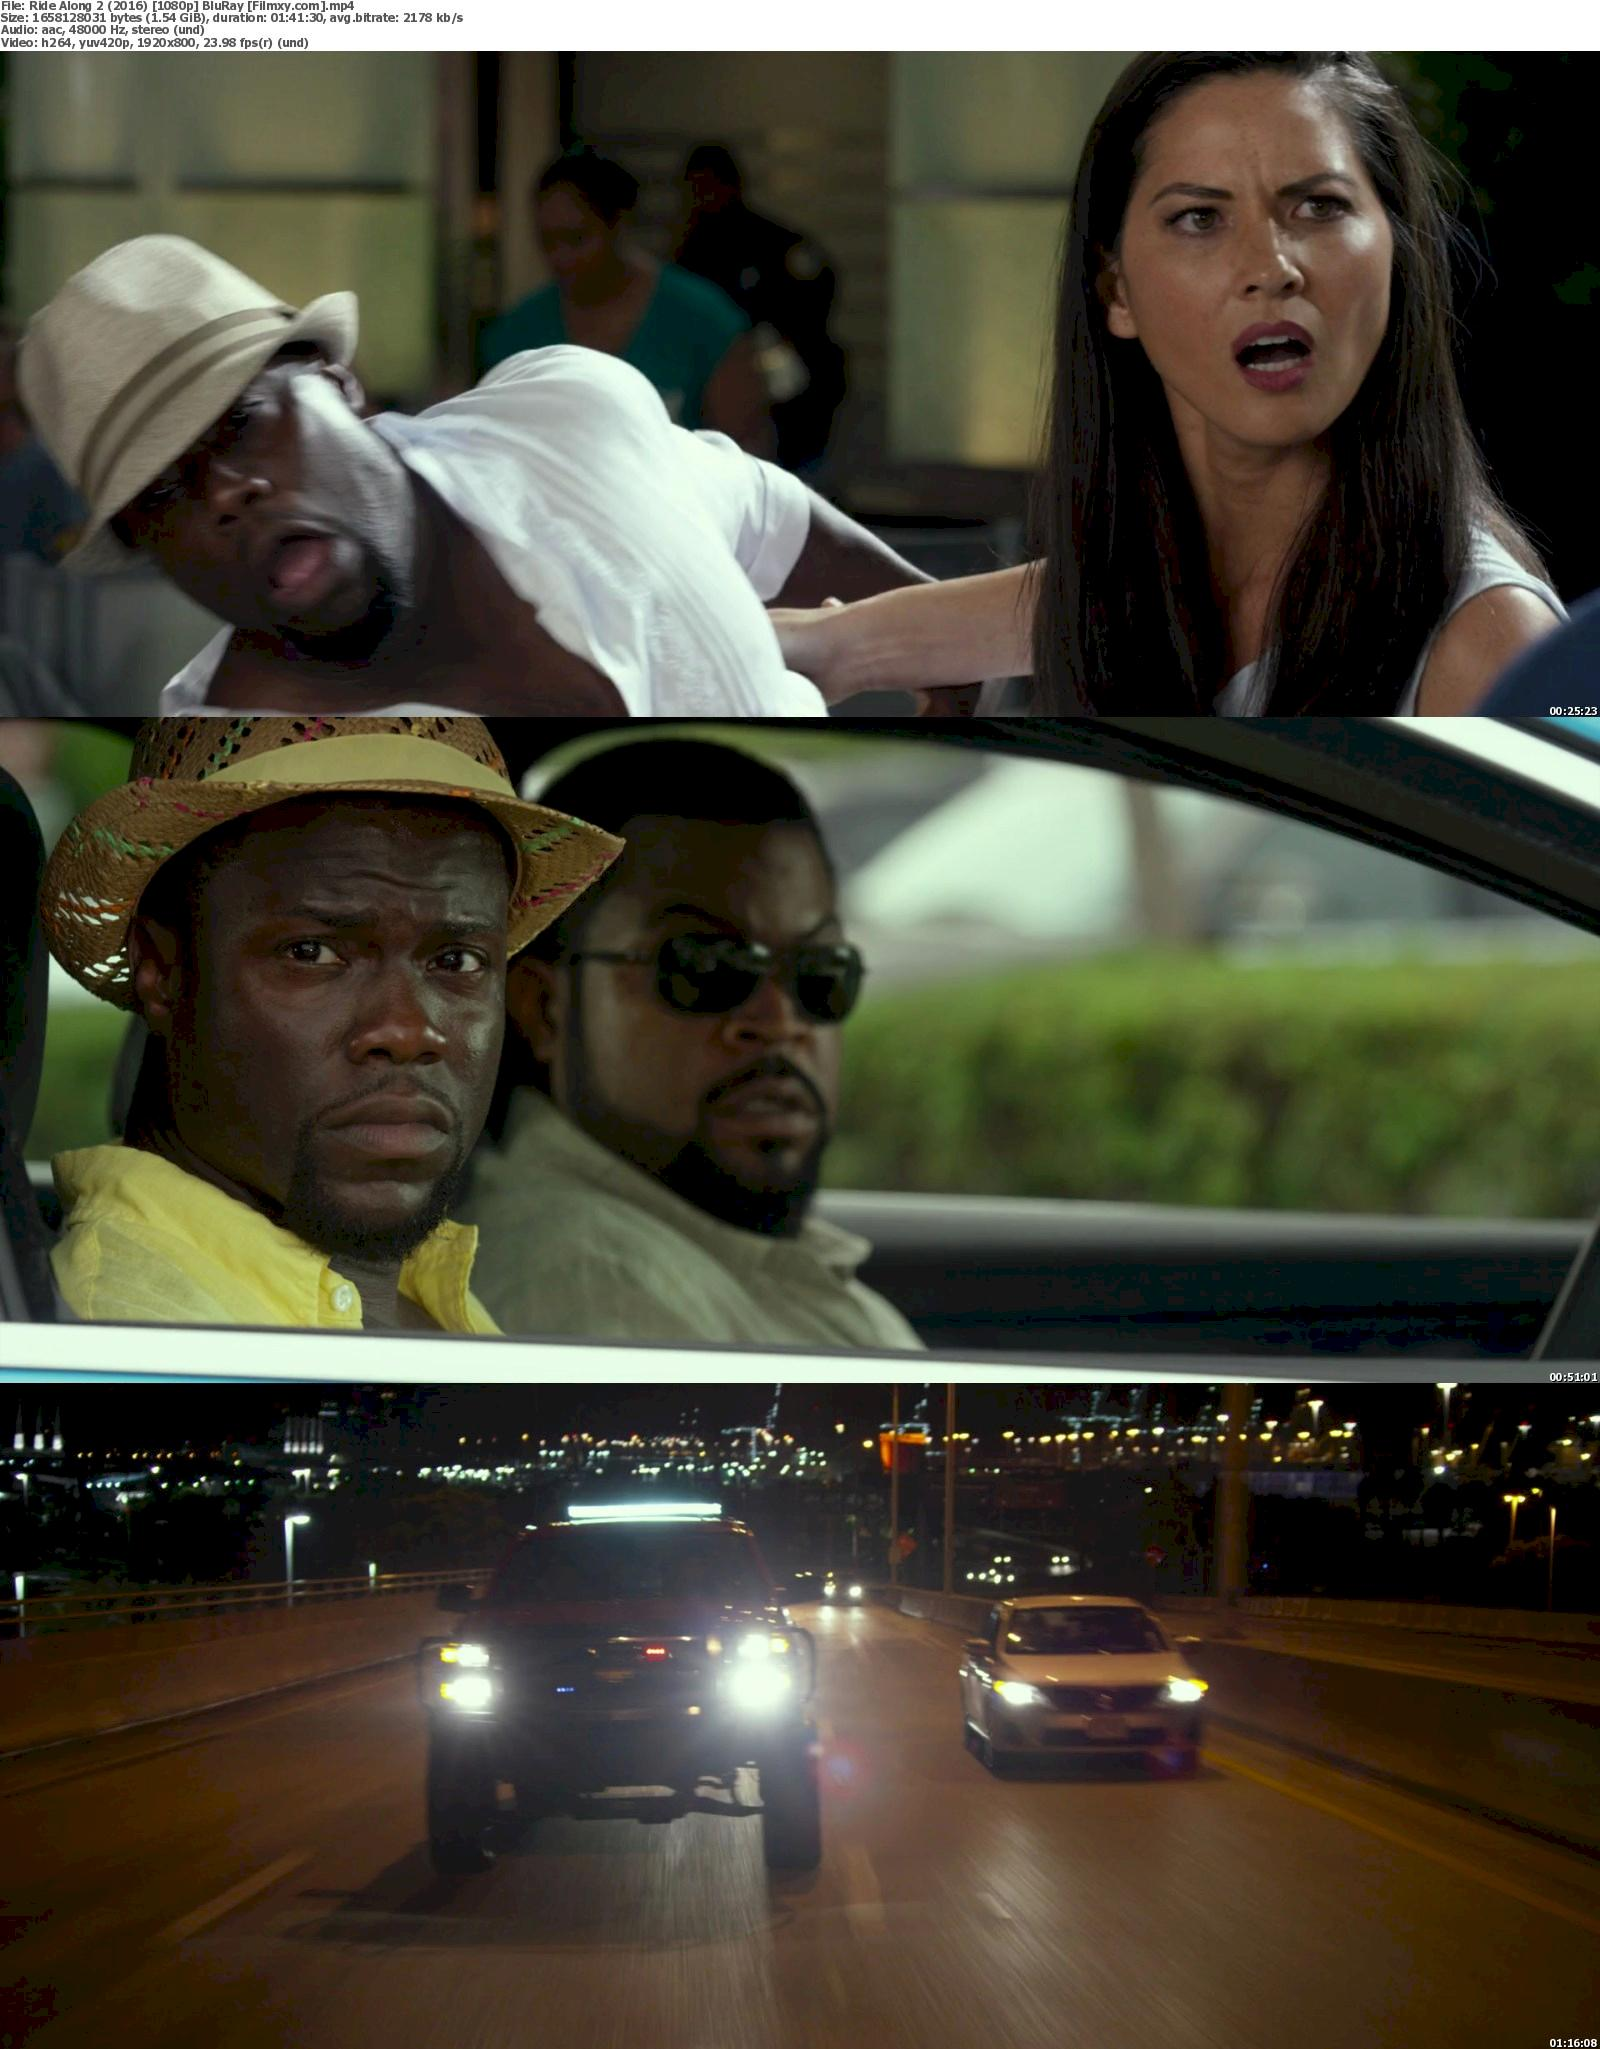 Ride Along 2 (2016) 720p & 1080p BluRay Free Download 1080p Screenshot